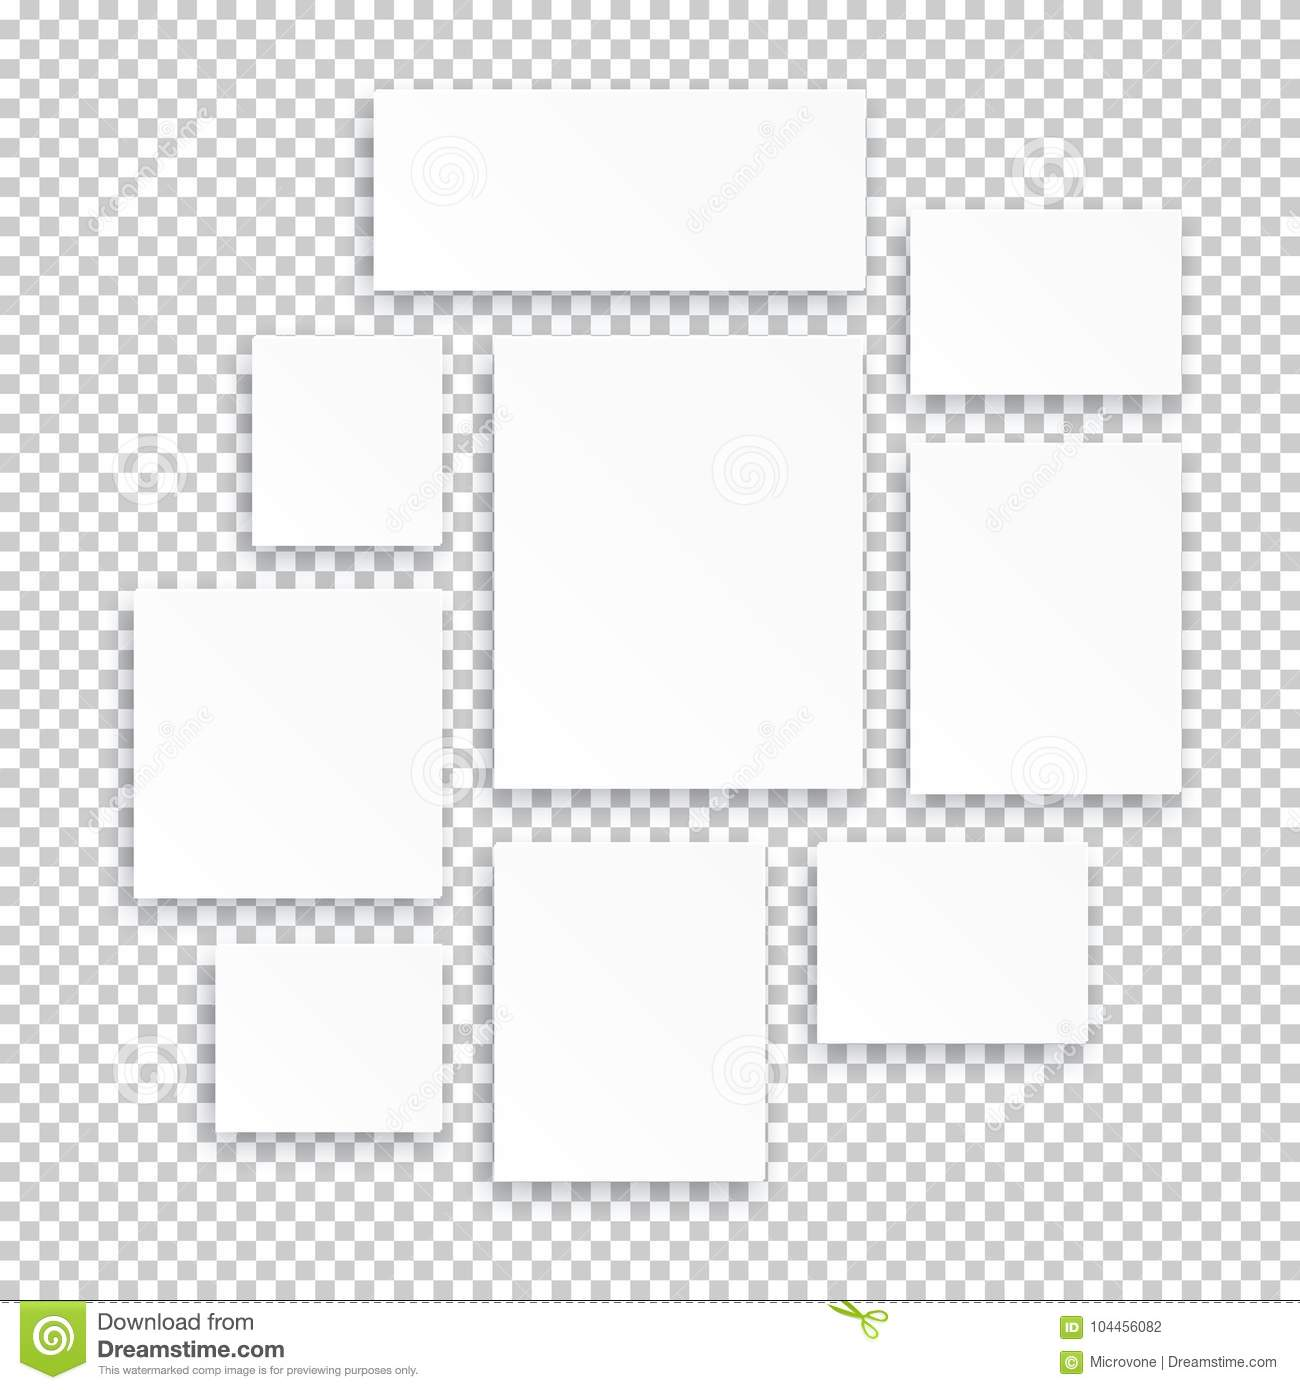 Blank white 3d paper canvas or photo frames isolated on transparent background